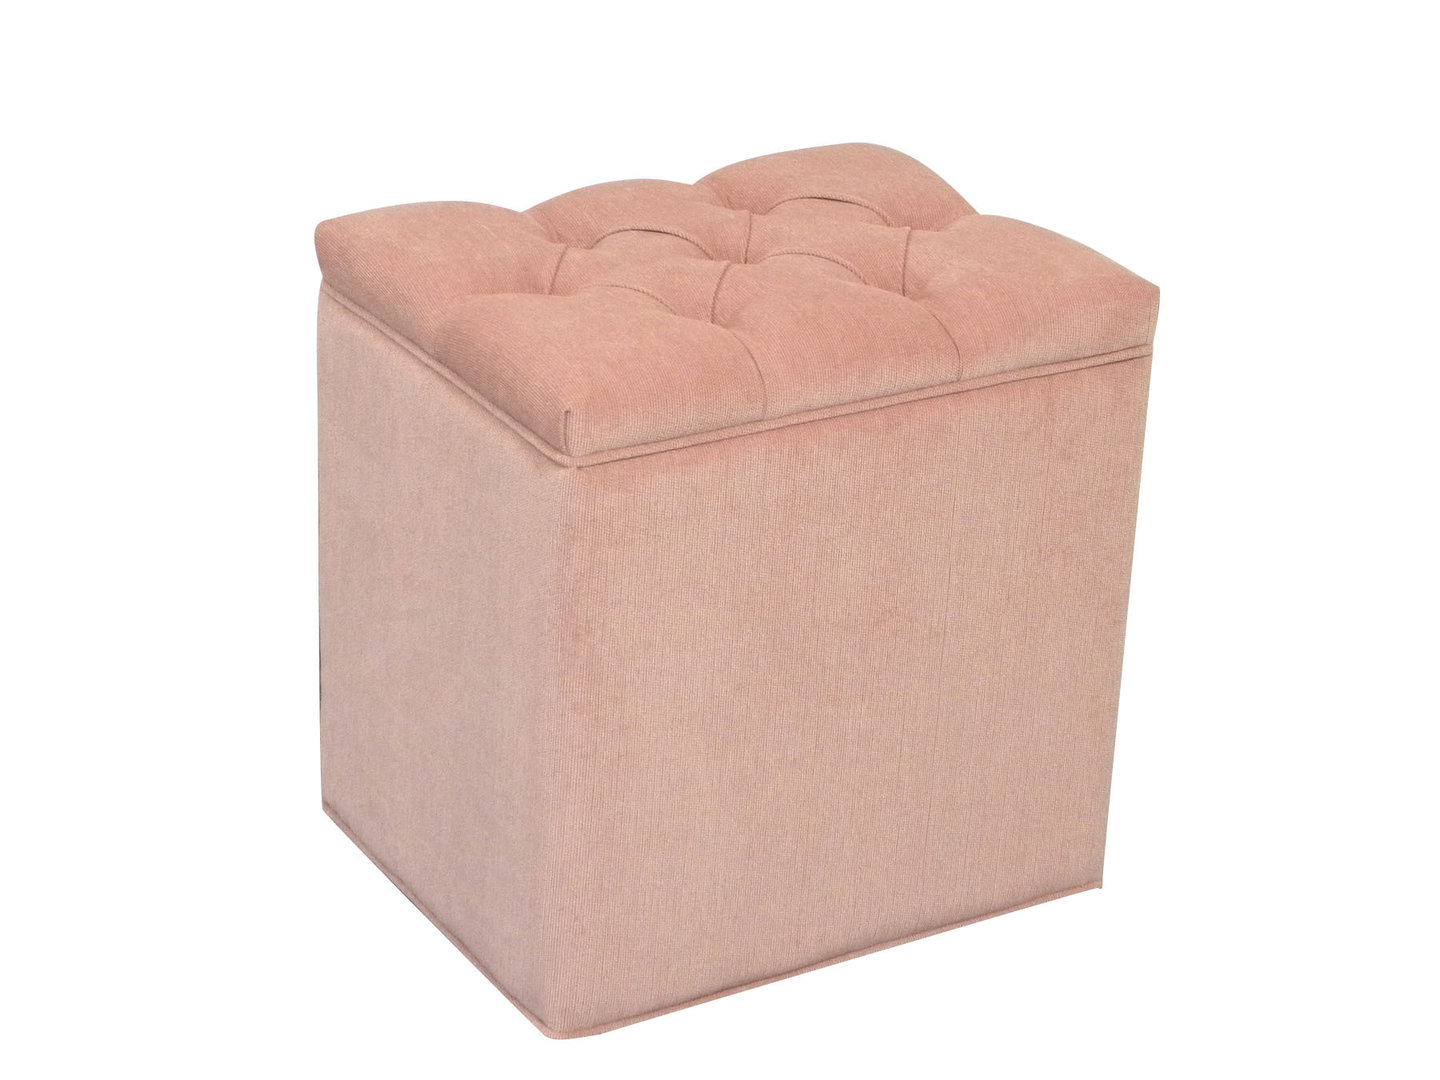 Ottoman Box Storage Box Blanket Bedding Box Pink Chenille